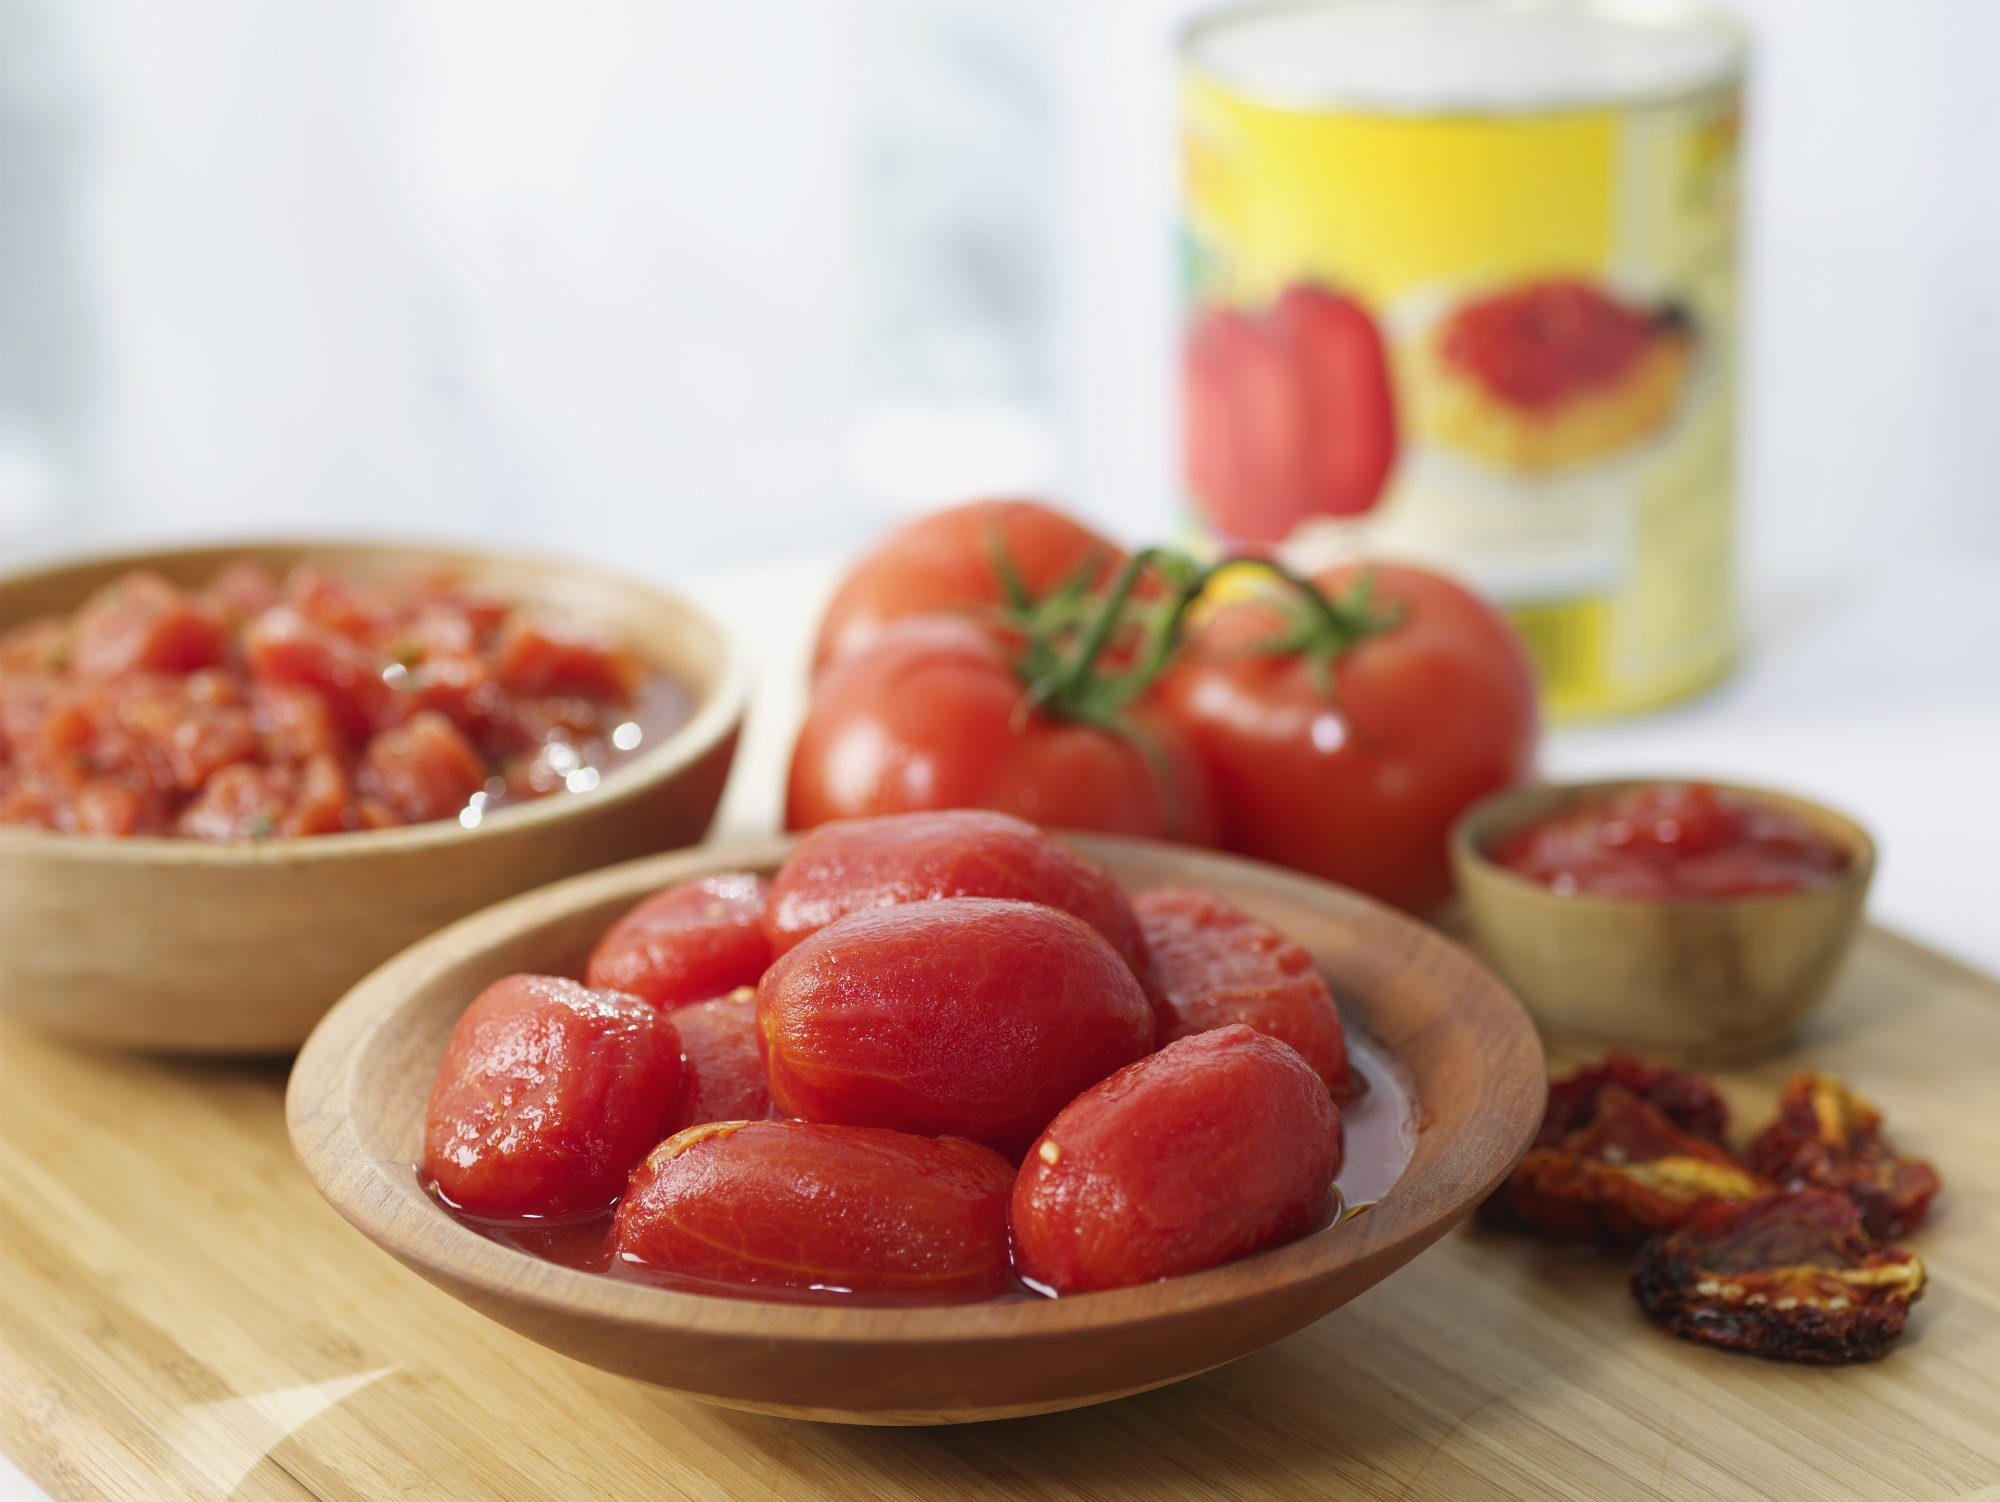 Assorted tomato products